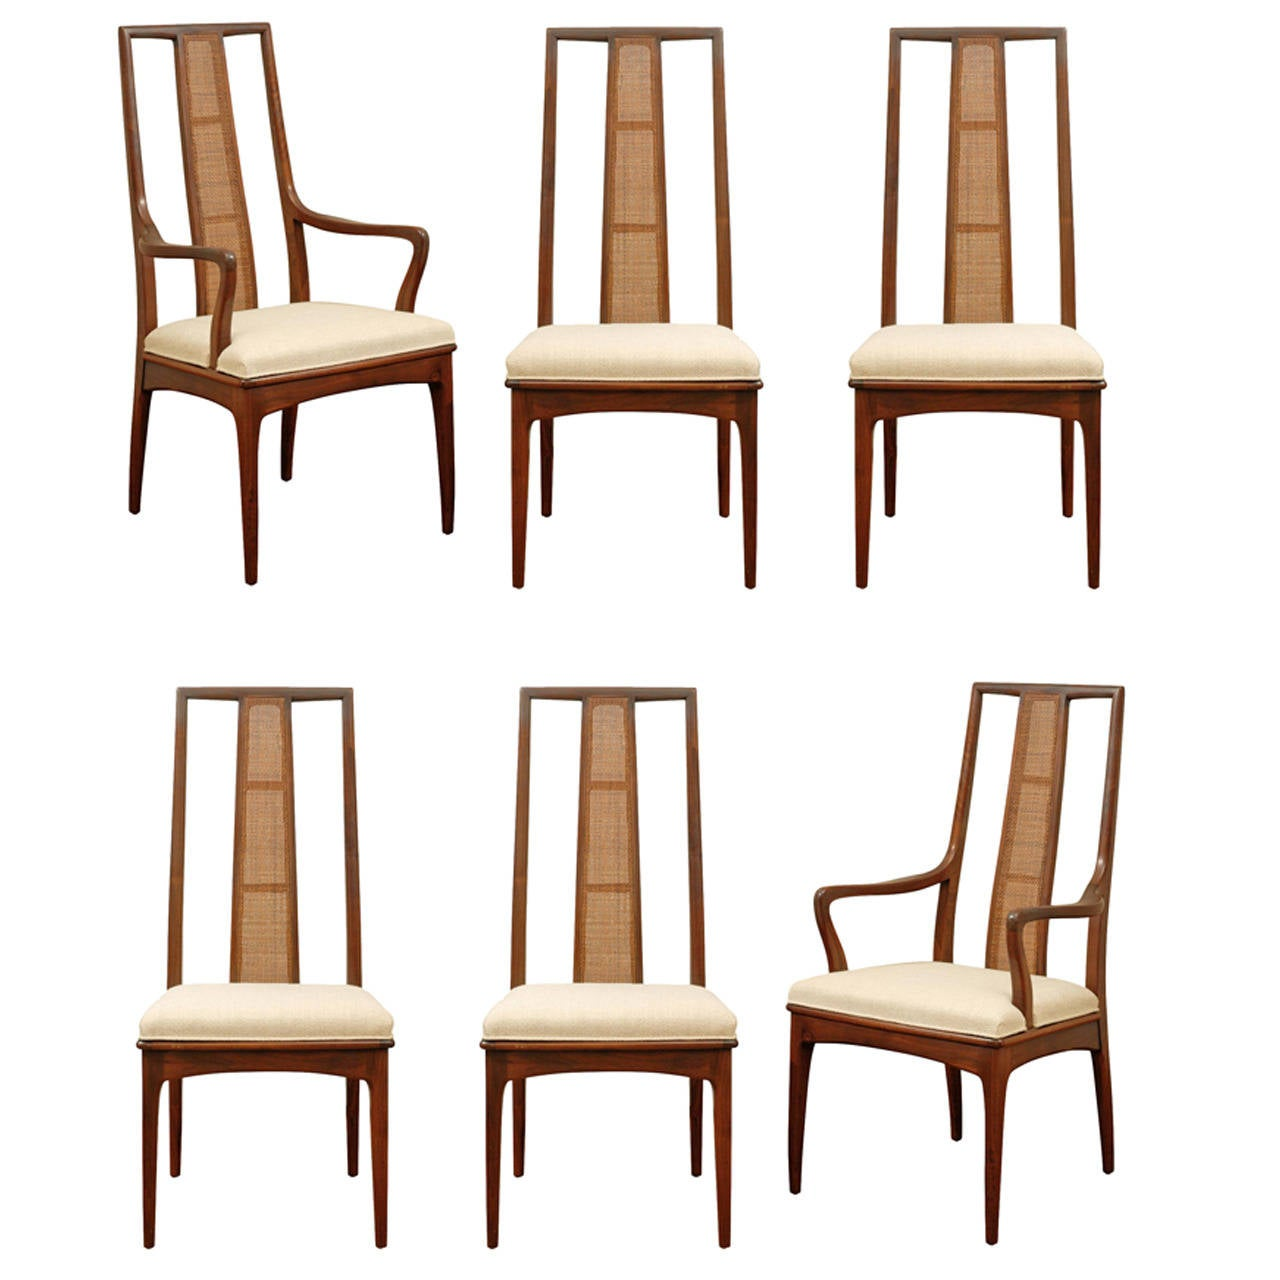 Cane Dining Chairs Elegant Set Of Six Walnut And Cane Dining Chairs By John